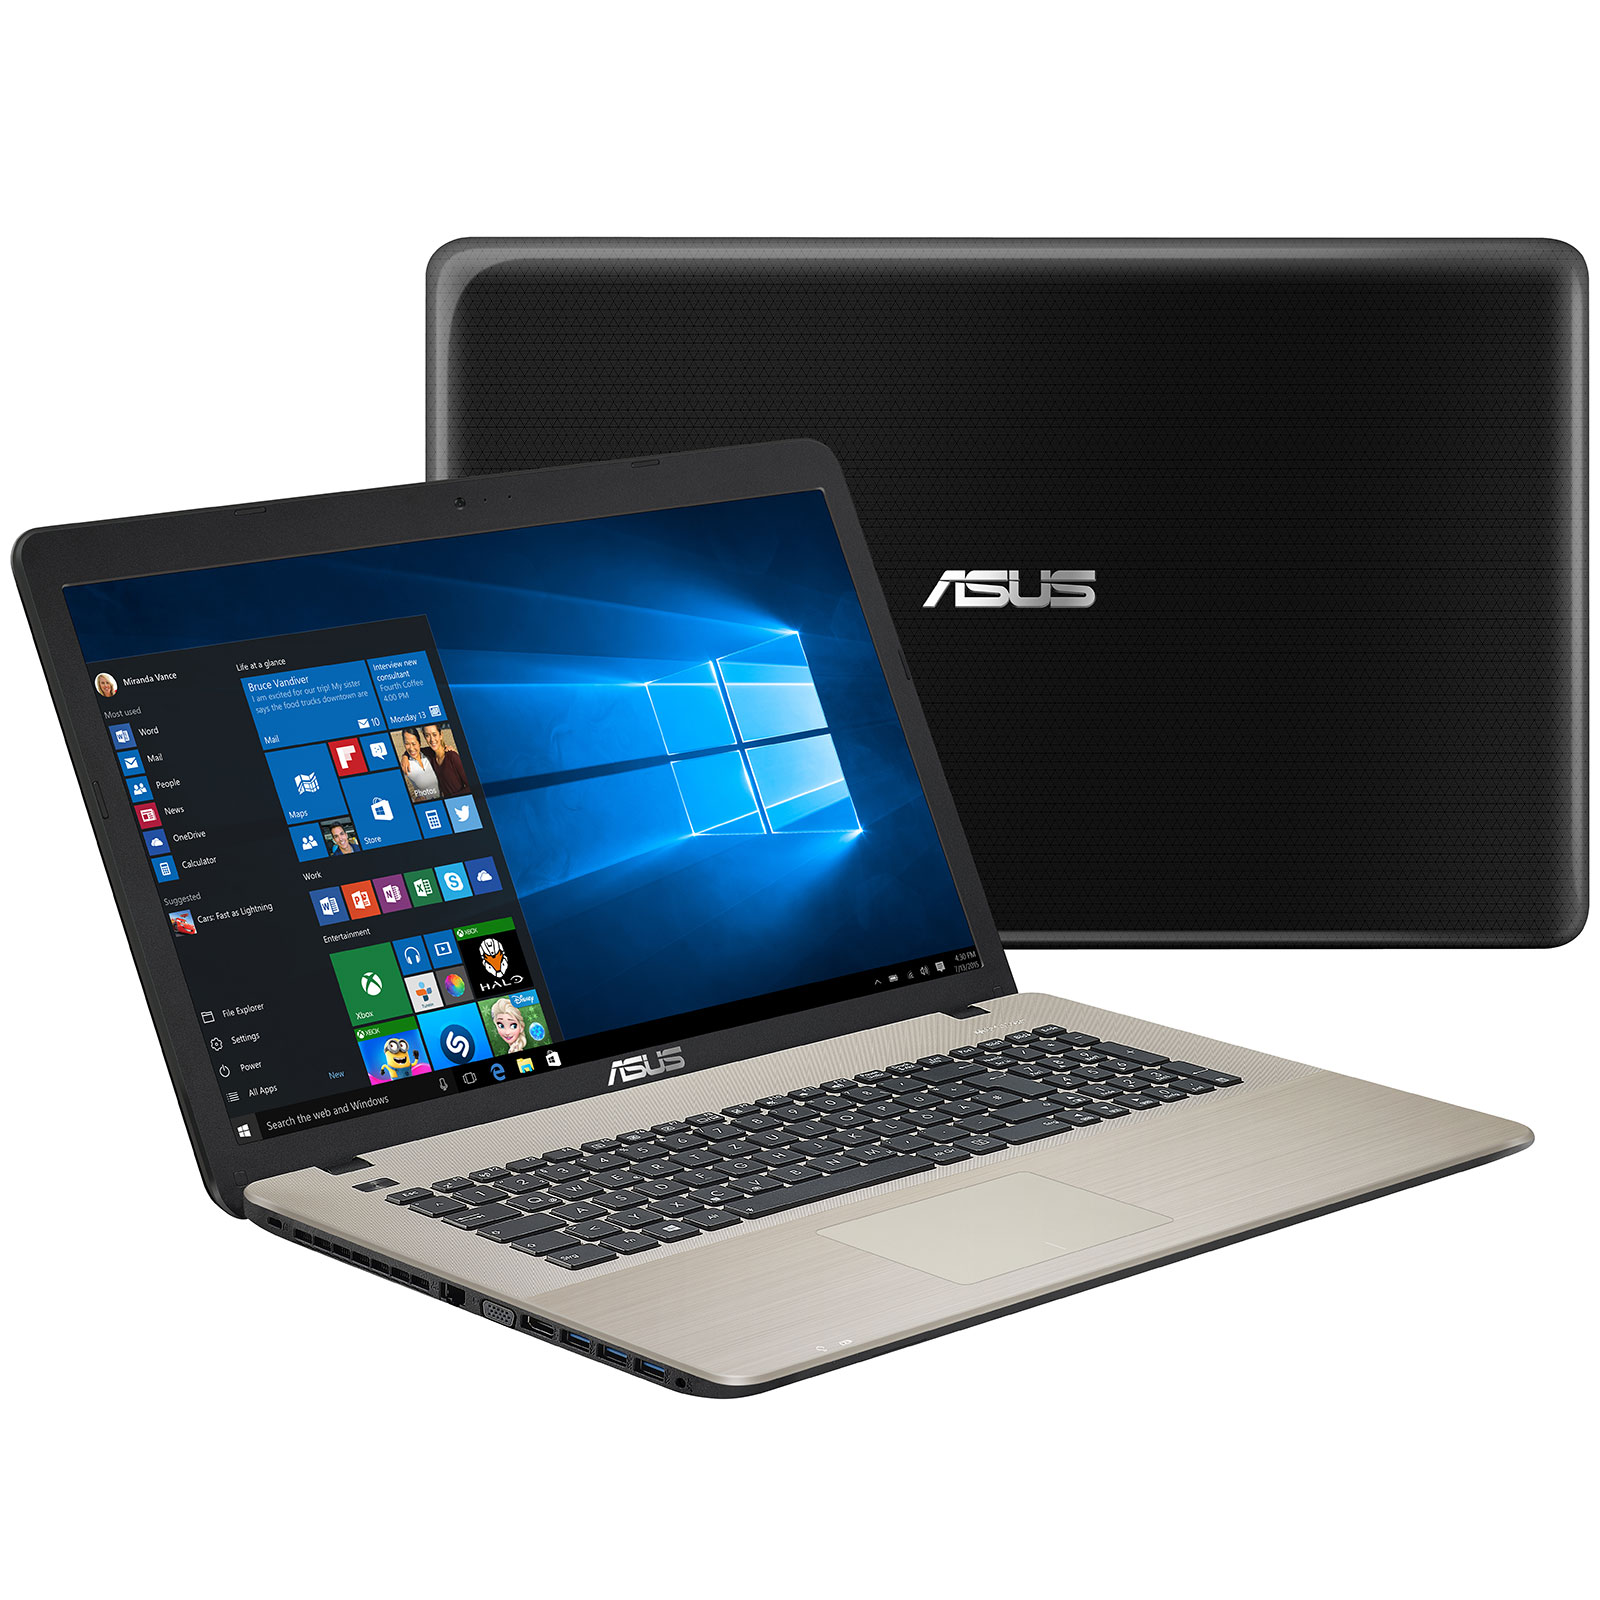 asus x752lj ty358t pc portable asus sur ldlc. Black Bedroom Furniture Sets. Home Design Ideas